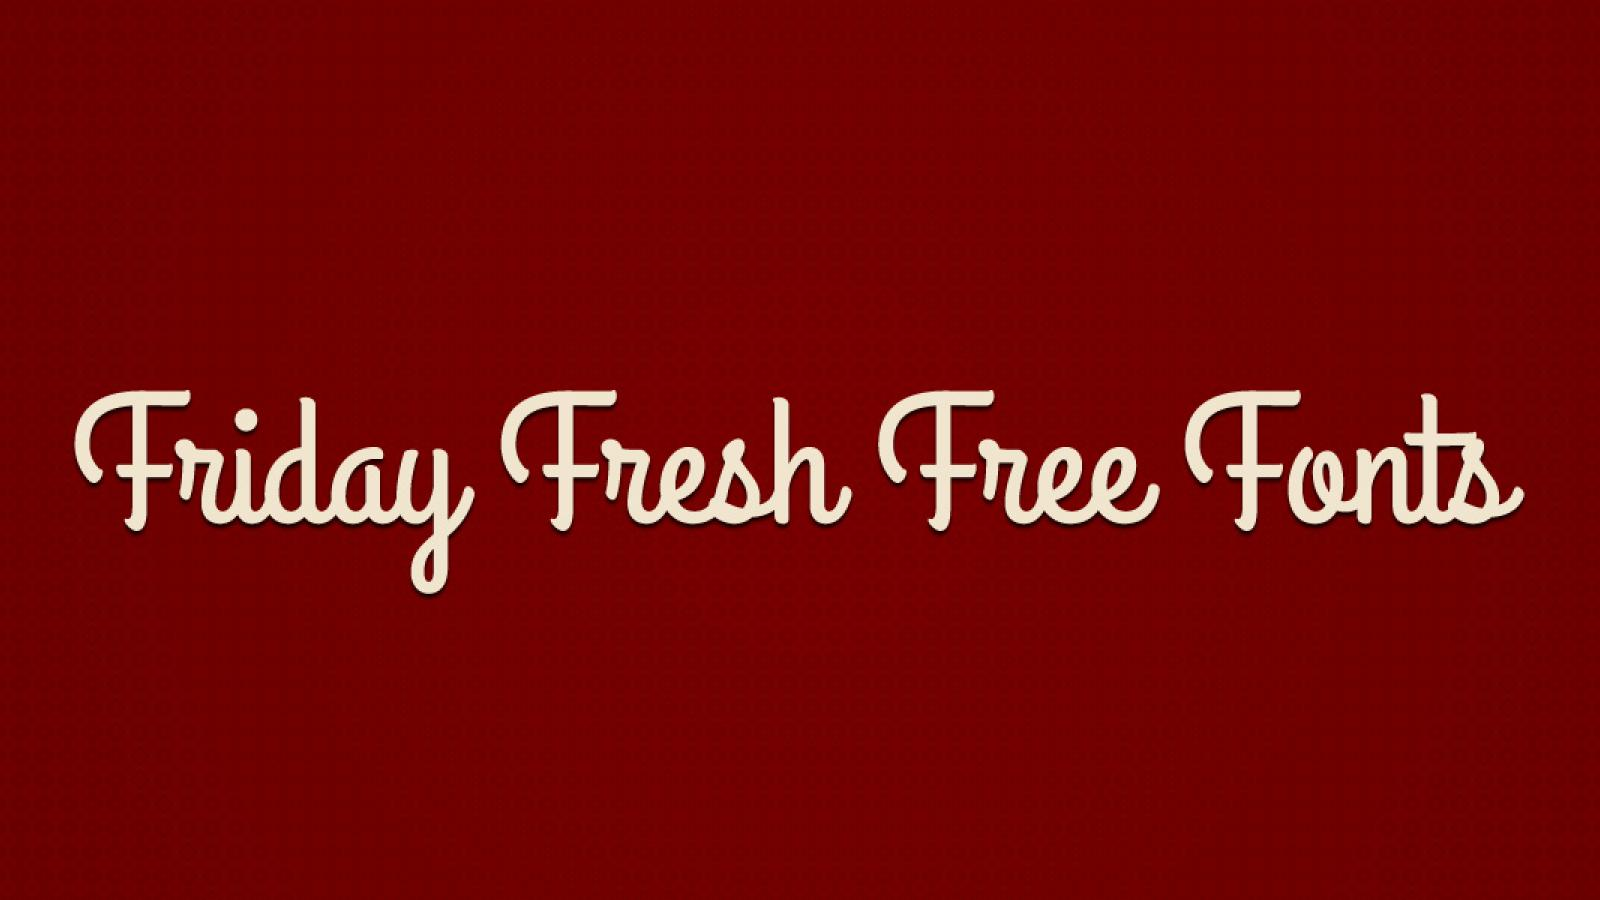 Friday Fresh Free Fonts - Grand Hotel, Ventura Times, ...